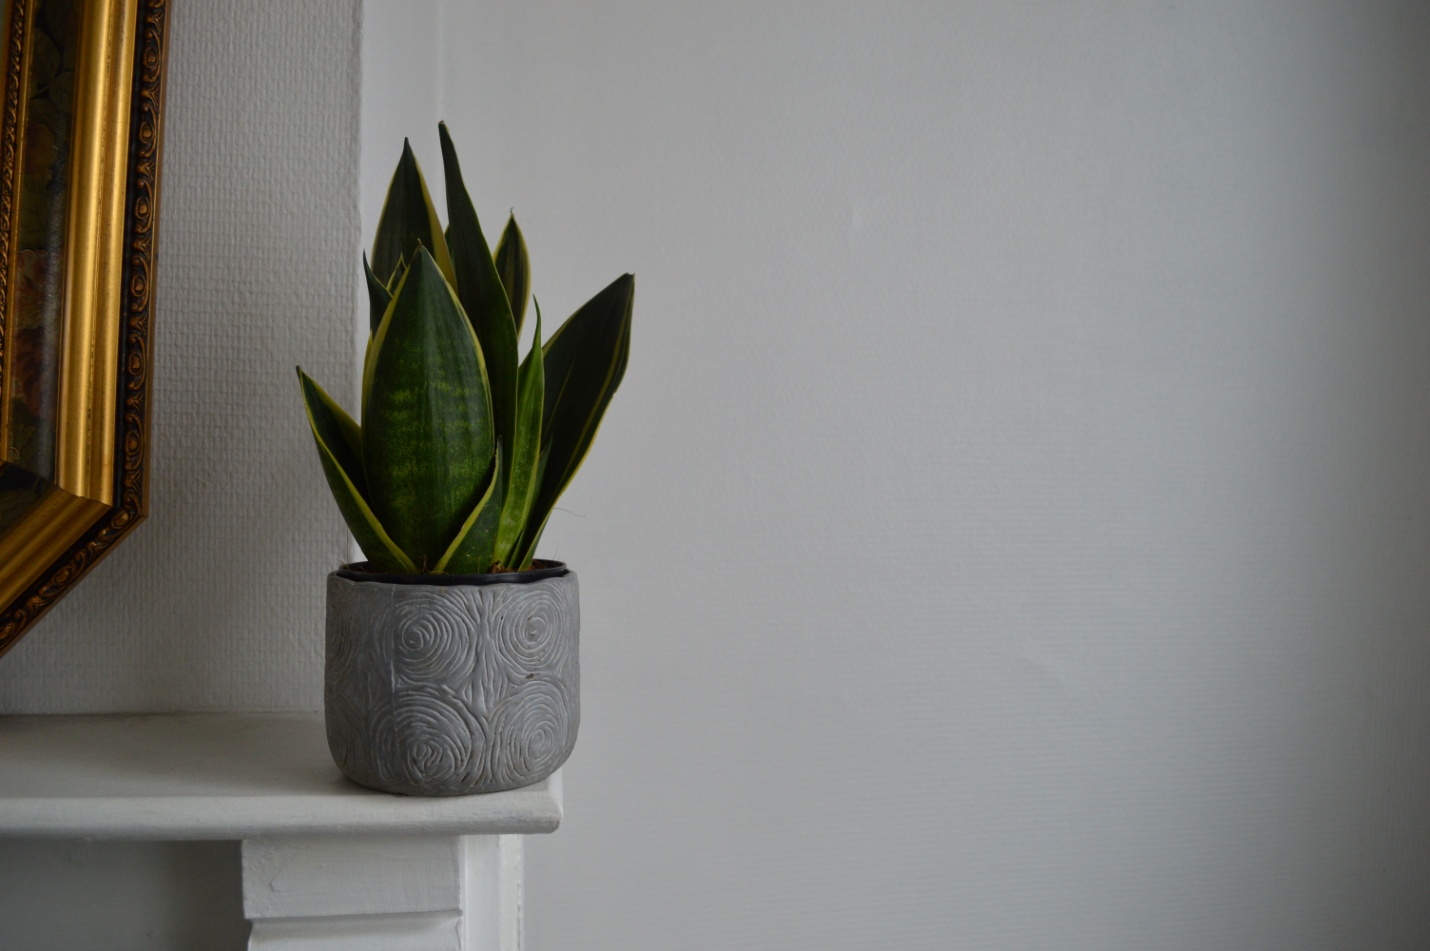 A guide on how to cultivate a snake plant